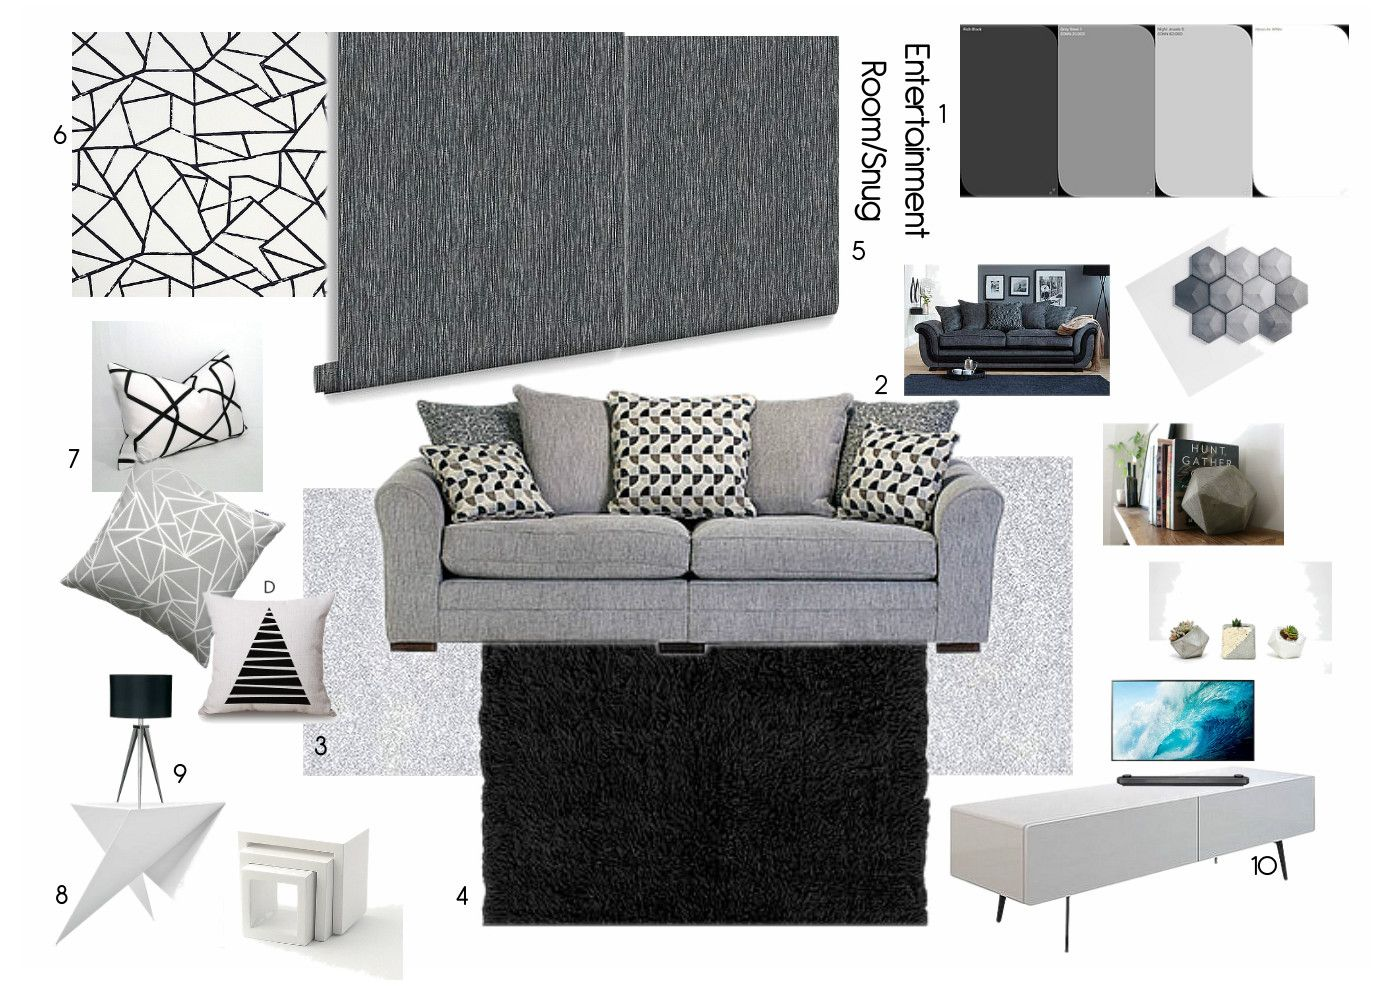 Achromatic Colour Scheme Snug Entertainment Room Entertainment Room Room Colors Room Color Schemes